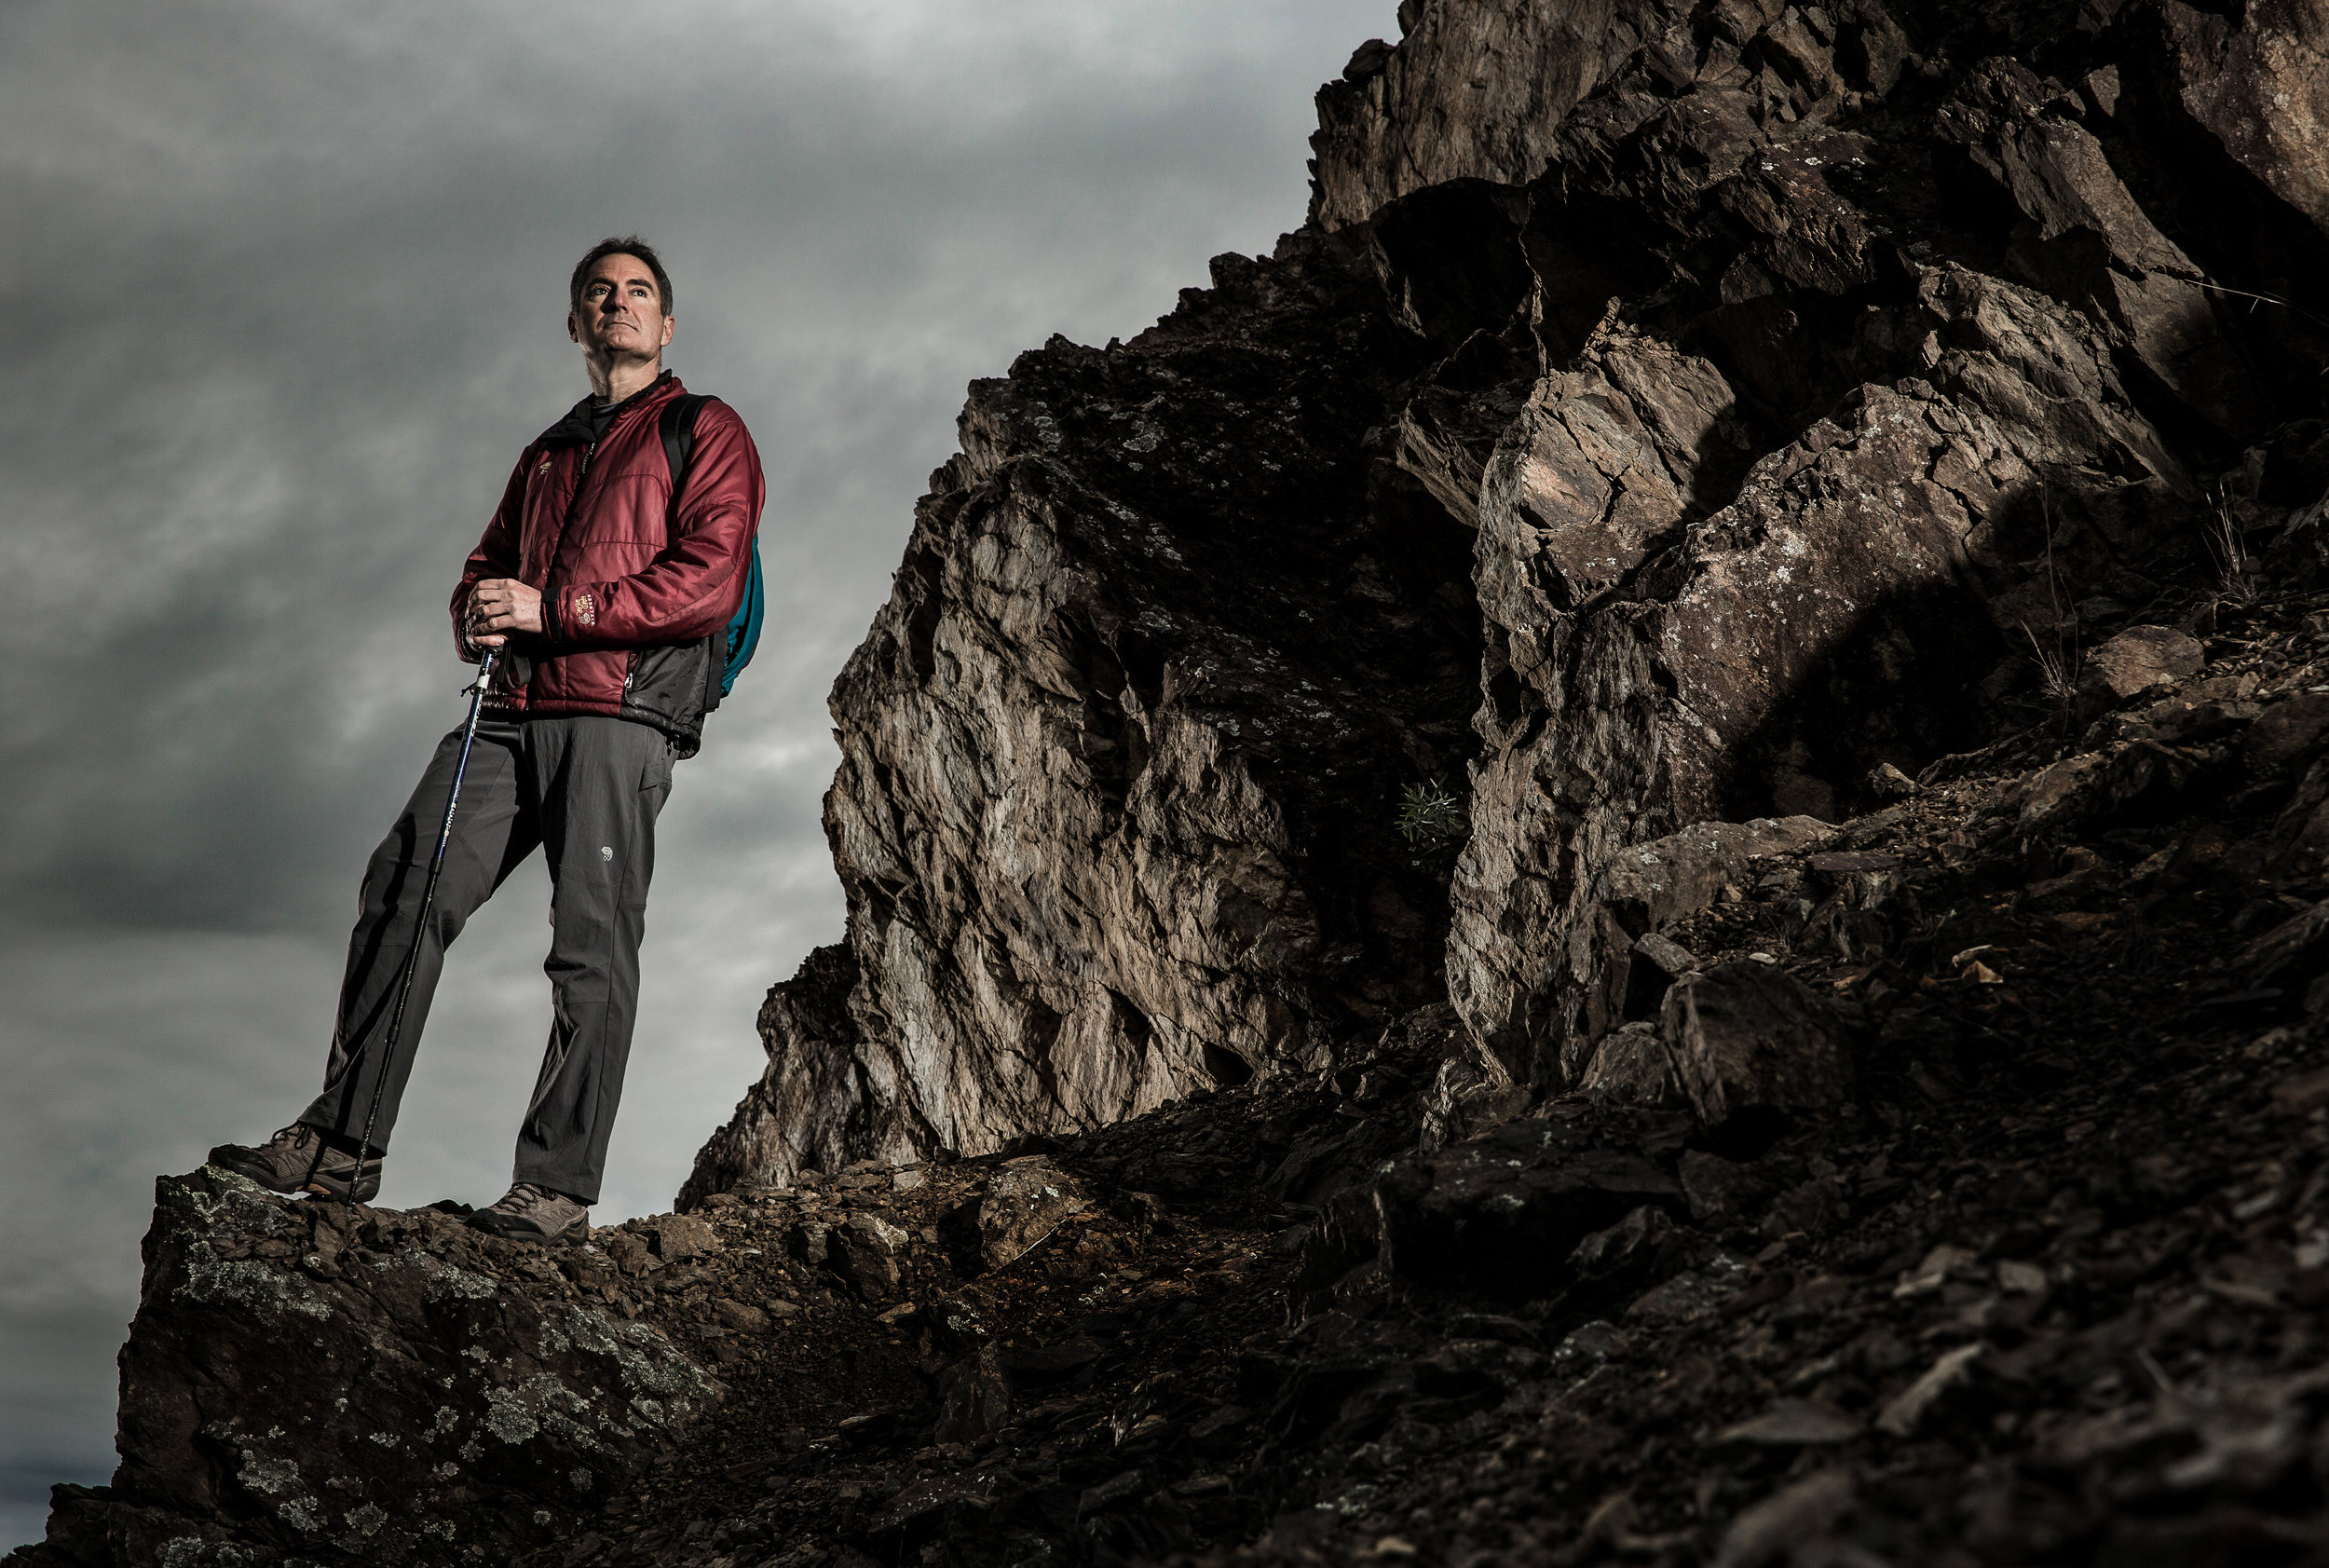 Environmental portrait  of Mountaineer Andrew Lock on a rock face wearing hiking clothes.